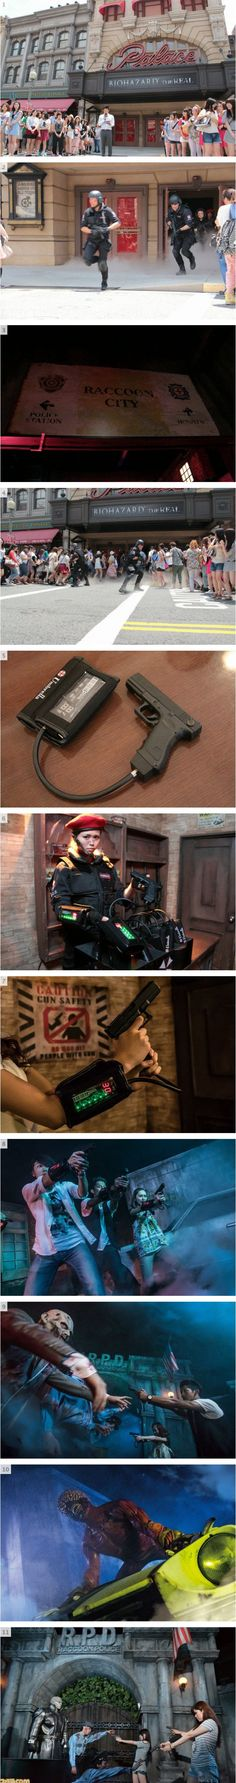 Real Life Resident Evil in den Universal Studios in Japan Awesomeness Zombie Apocalypse Party, Universal Studios Japan, Geek Style, George Town, Japan Time, Faith In Humanity Restored, Going Insane, Geek Out, Over The Rainbow